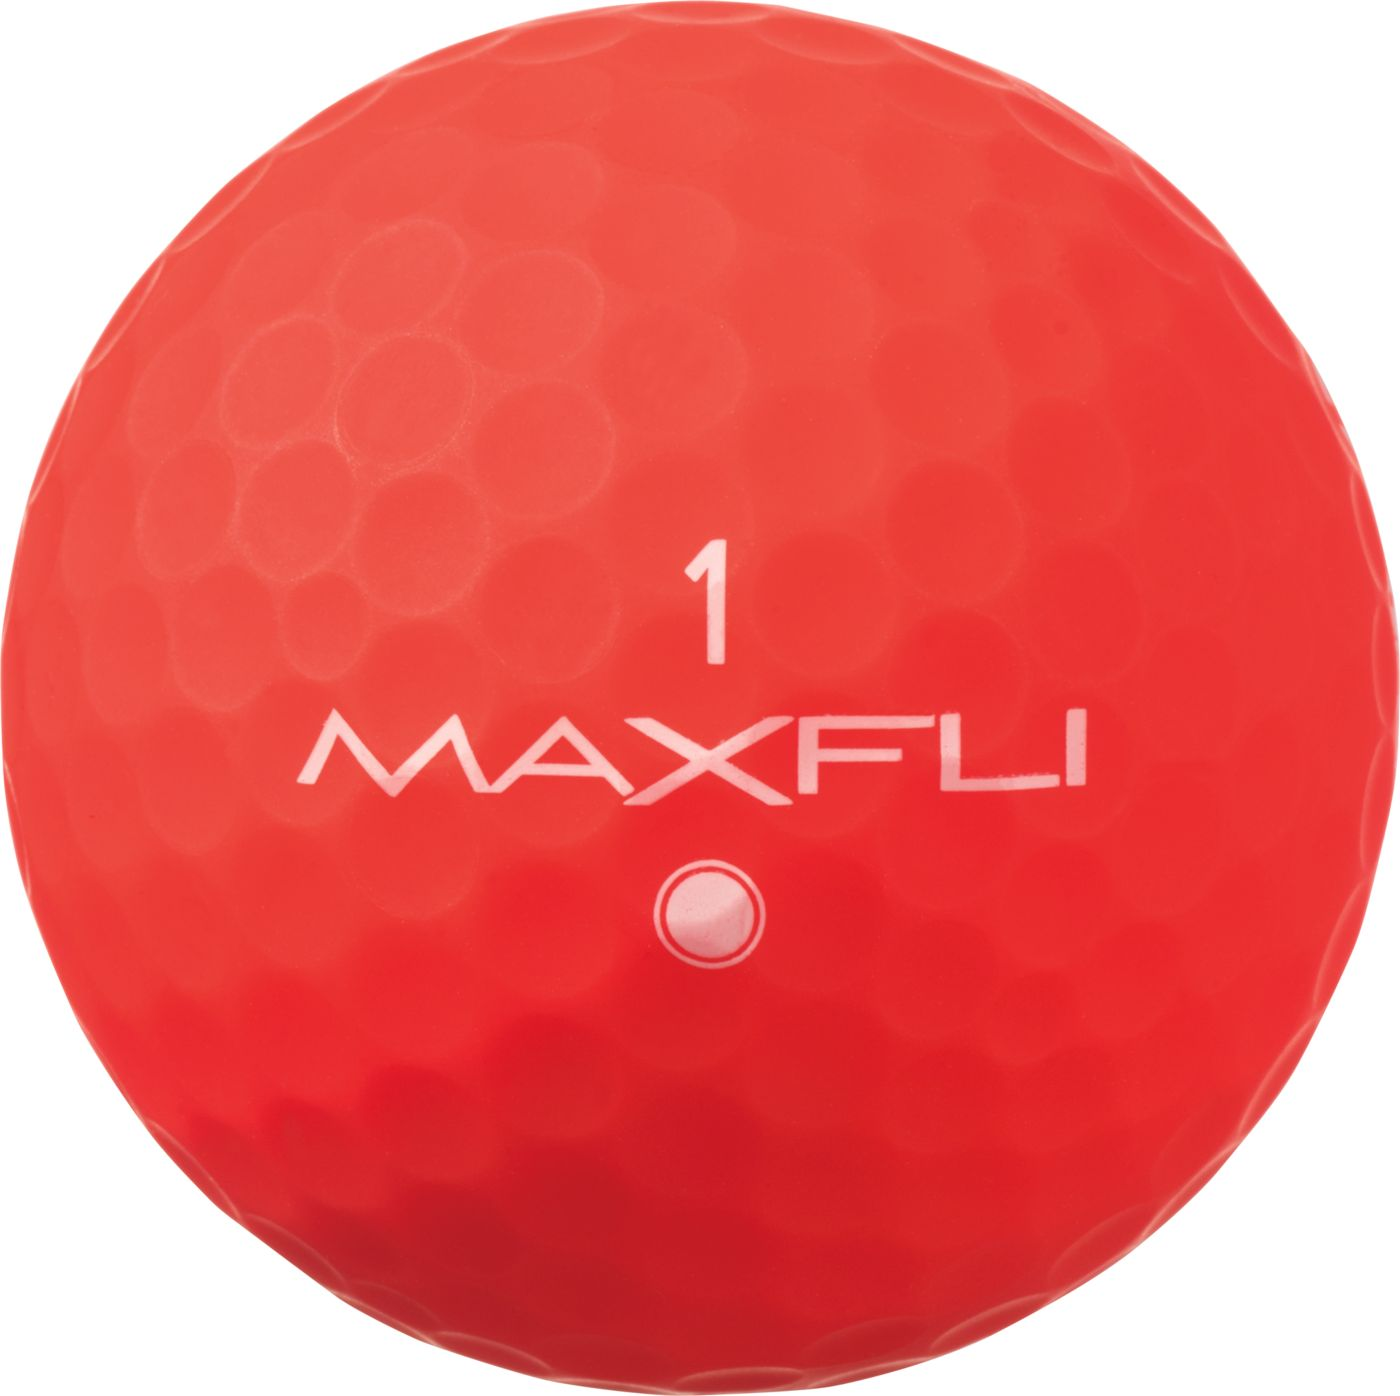 Maxfli SoftFli Matte Golf Balls – Red